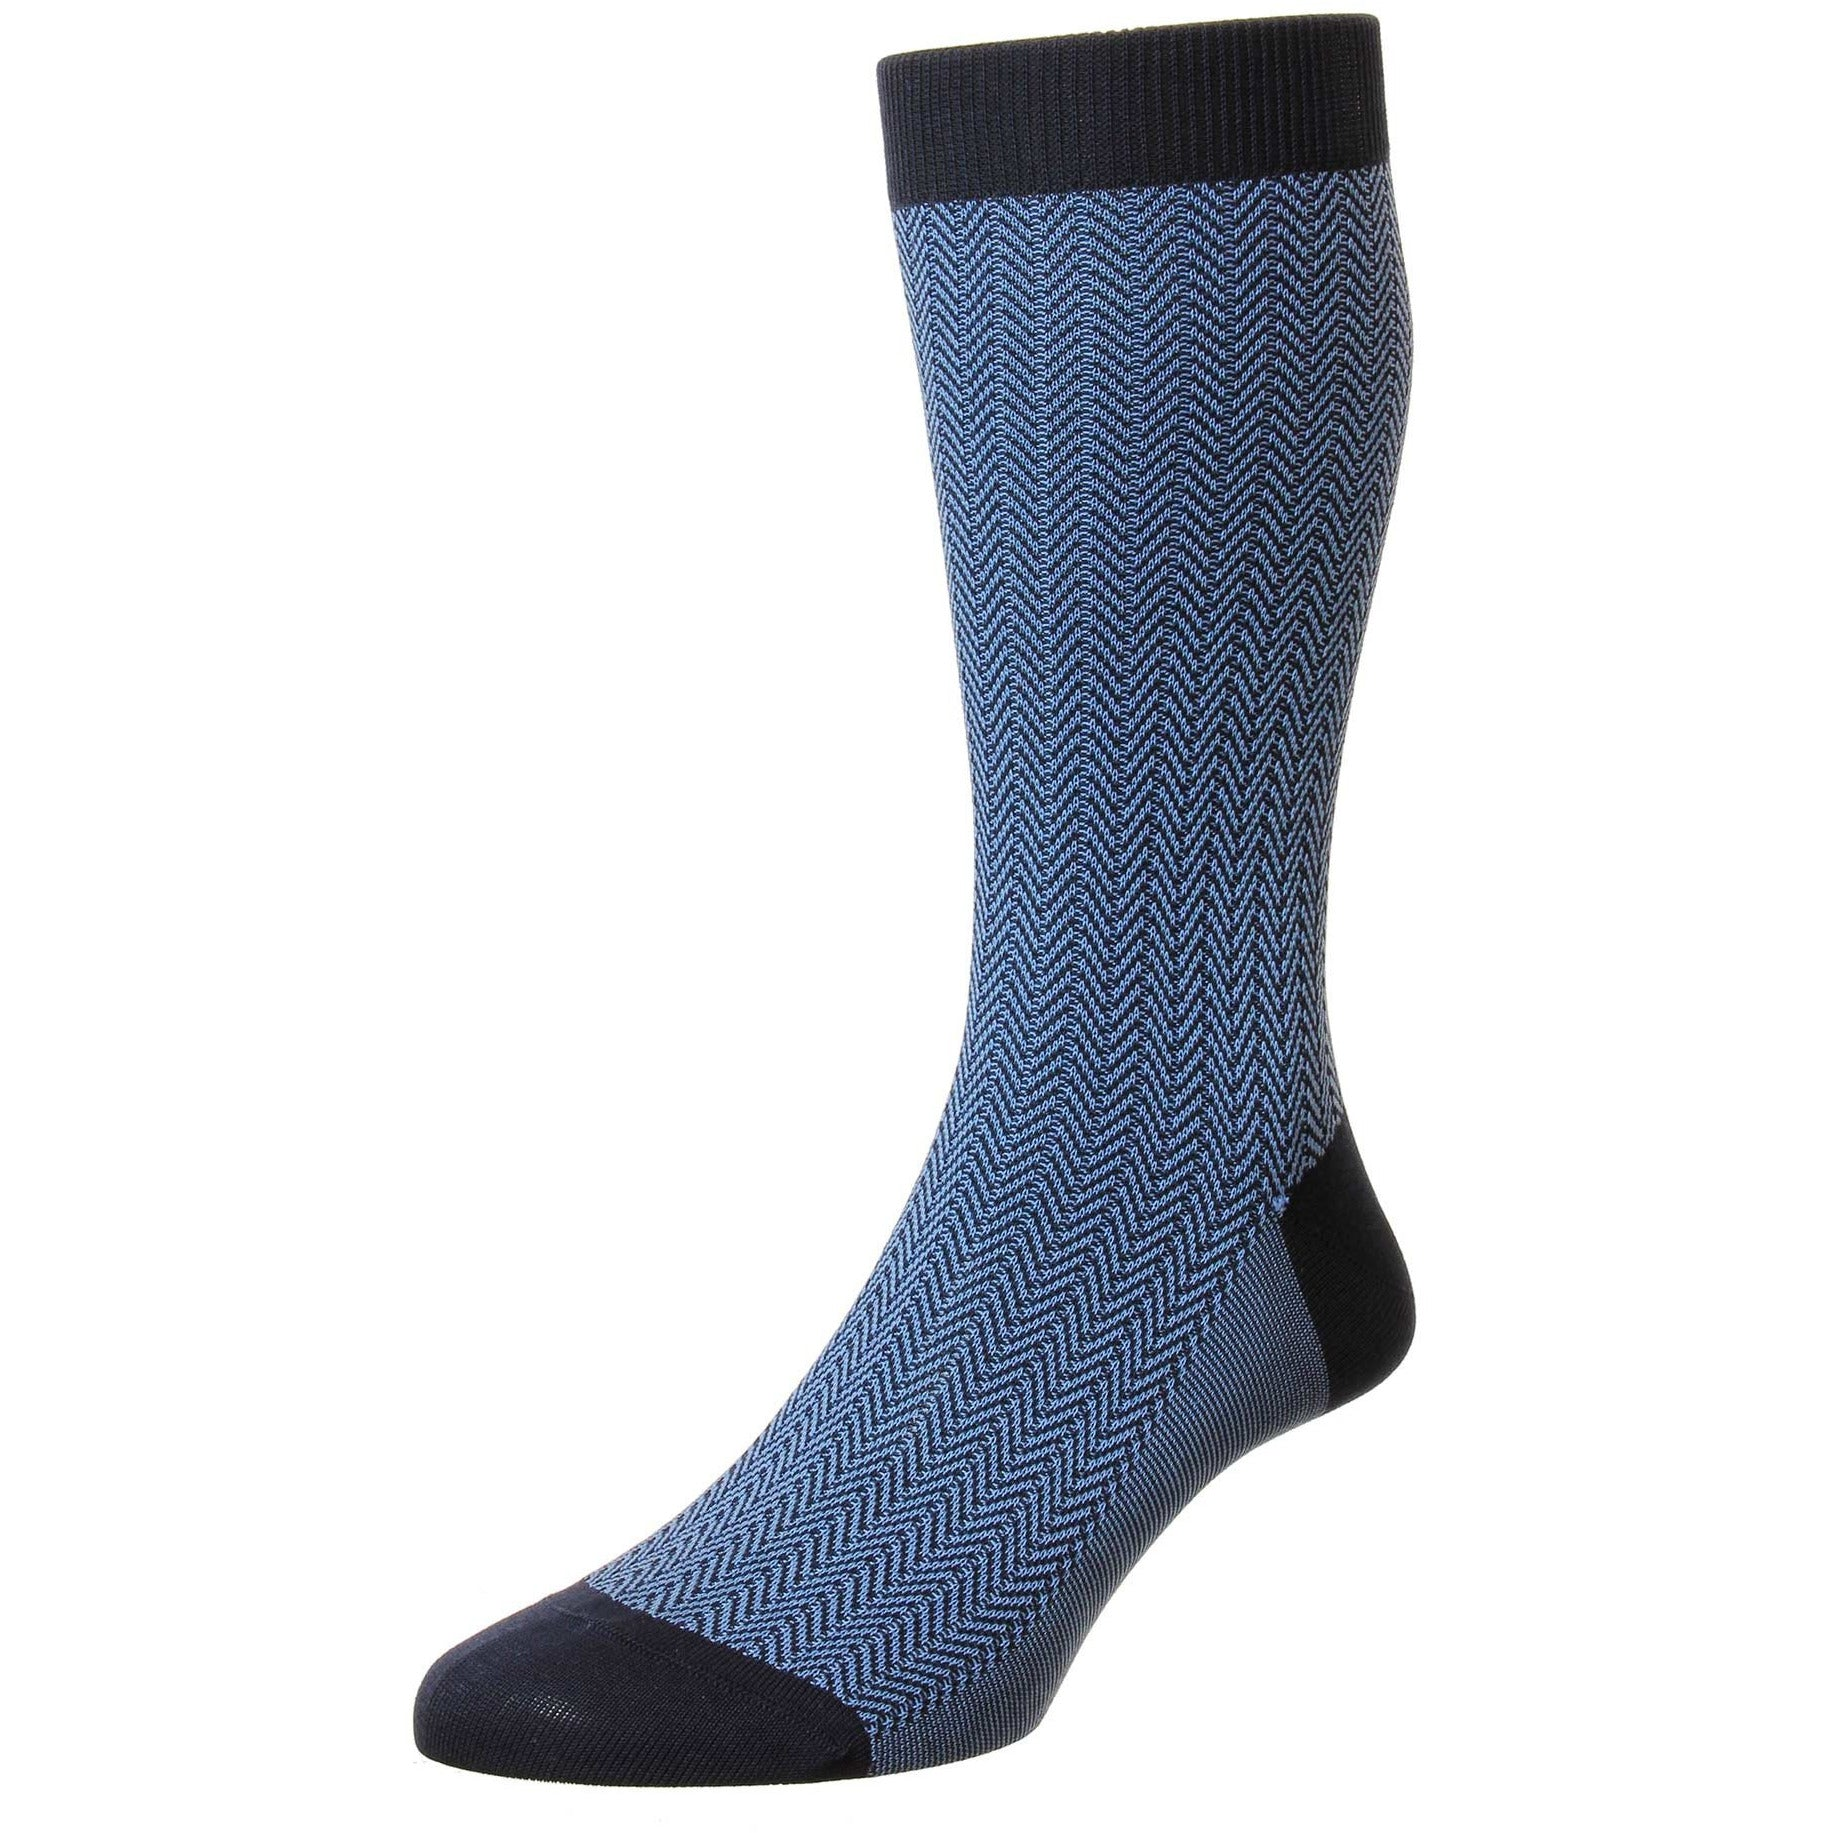 Fabian Herringbone Calf Length Dress Socks